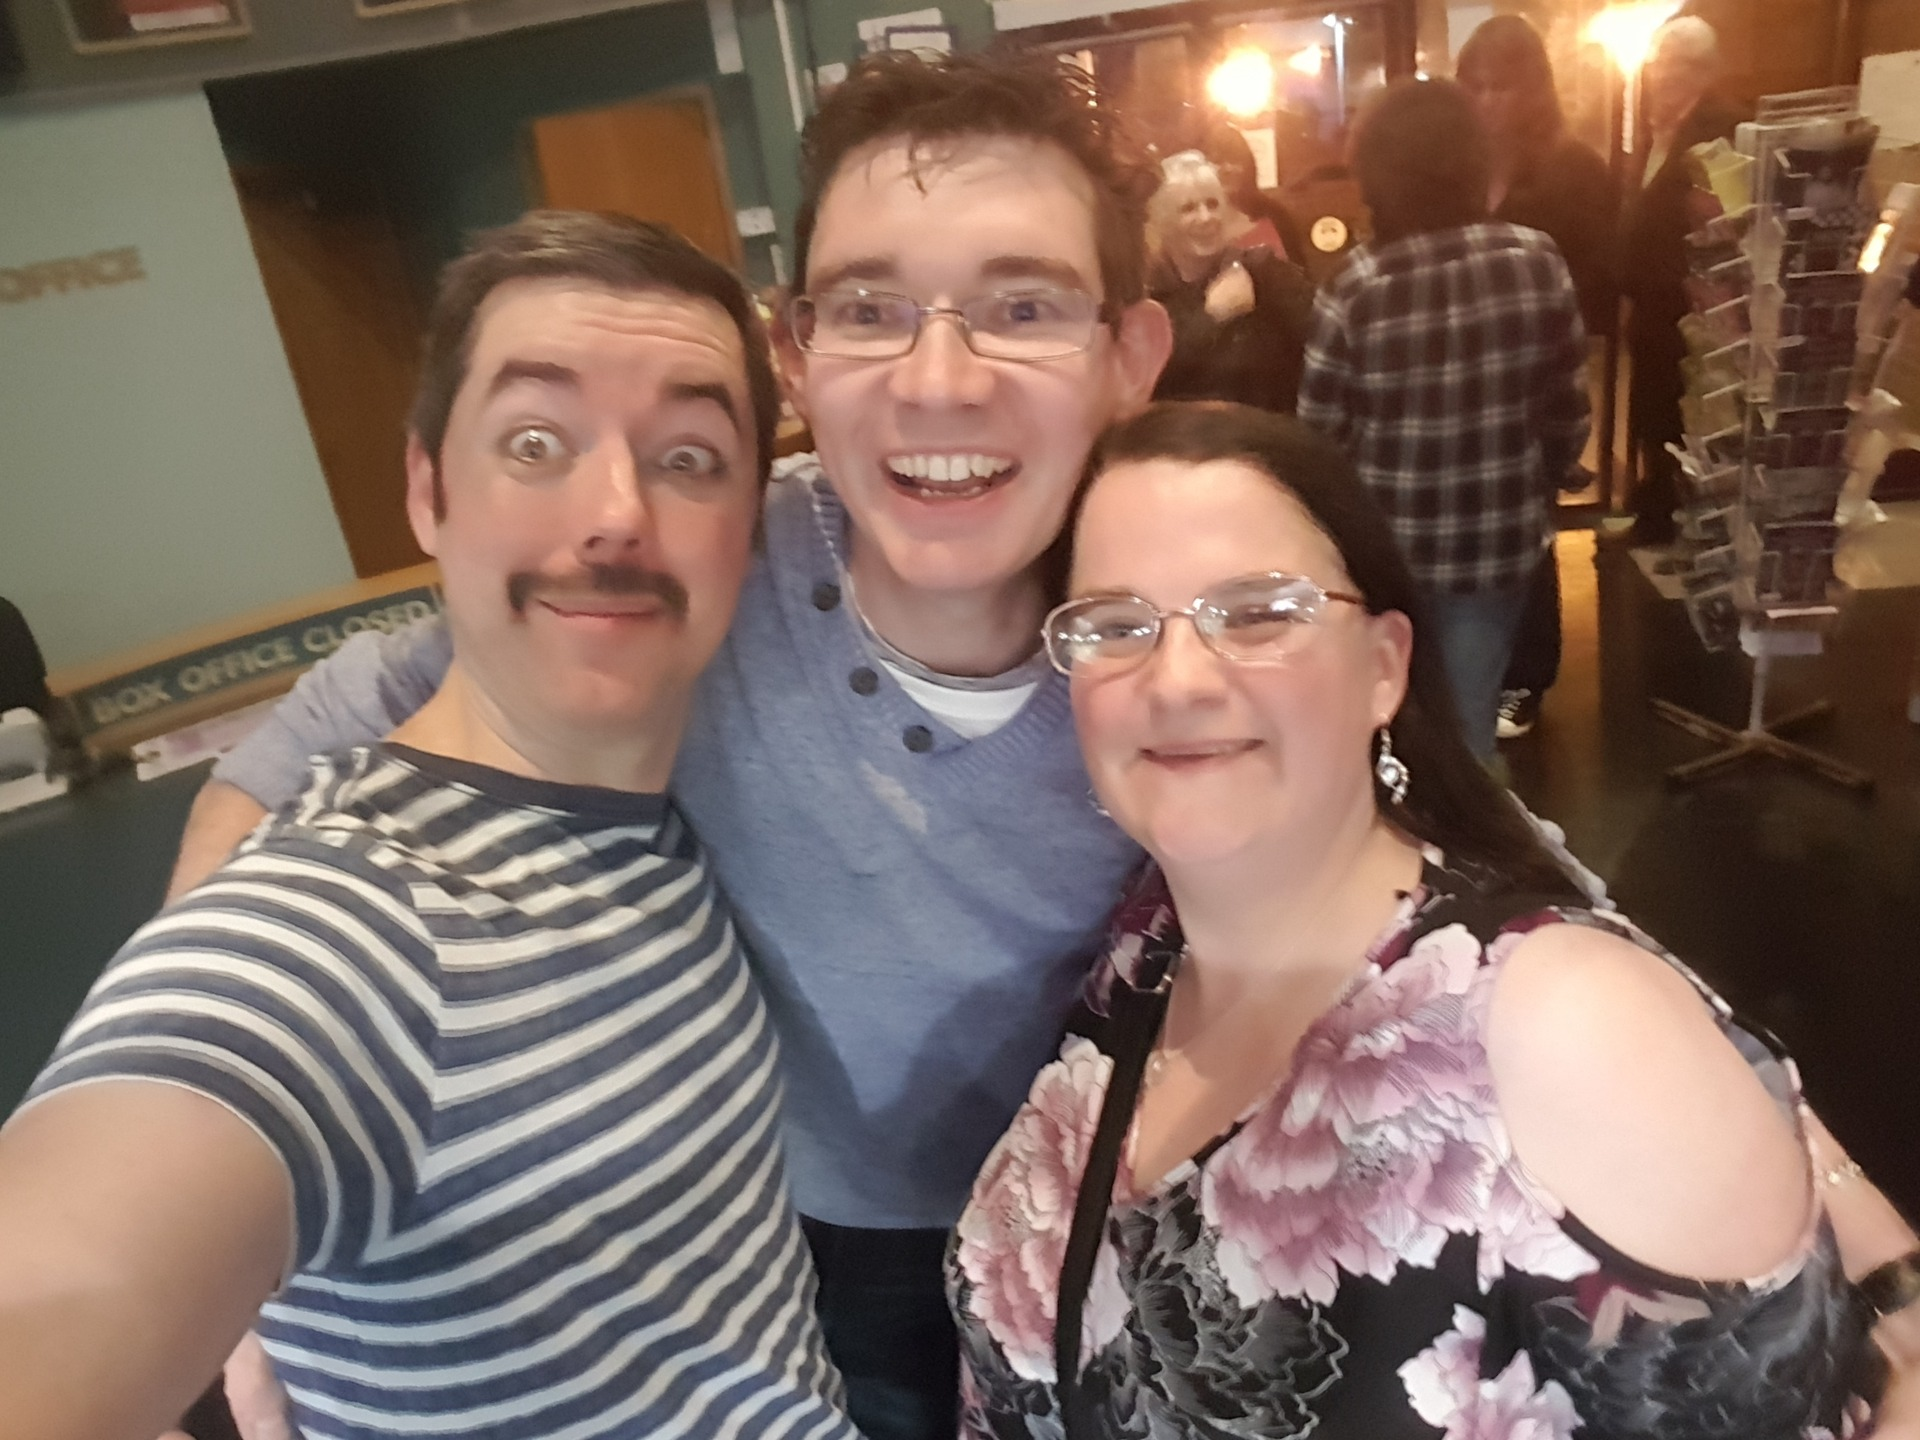 Seth Daniels - Freddie Mercury from Queen Tribute Majesty with me and Dale